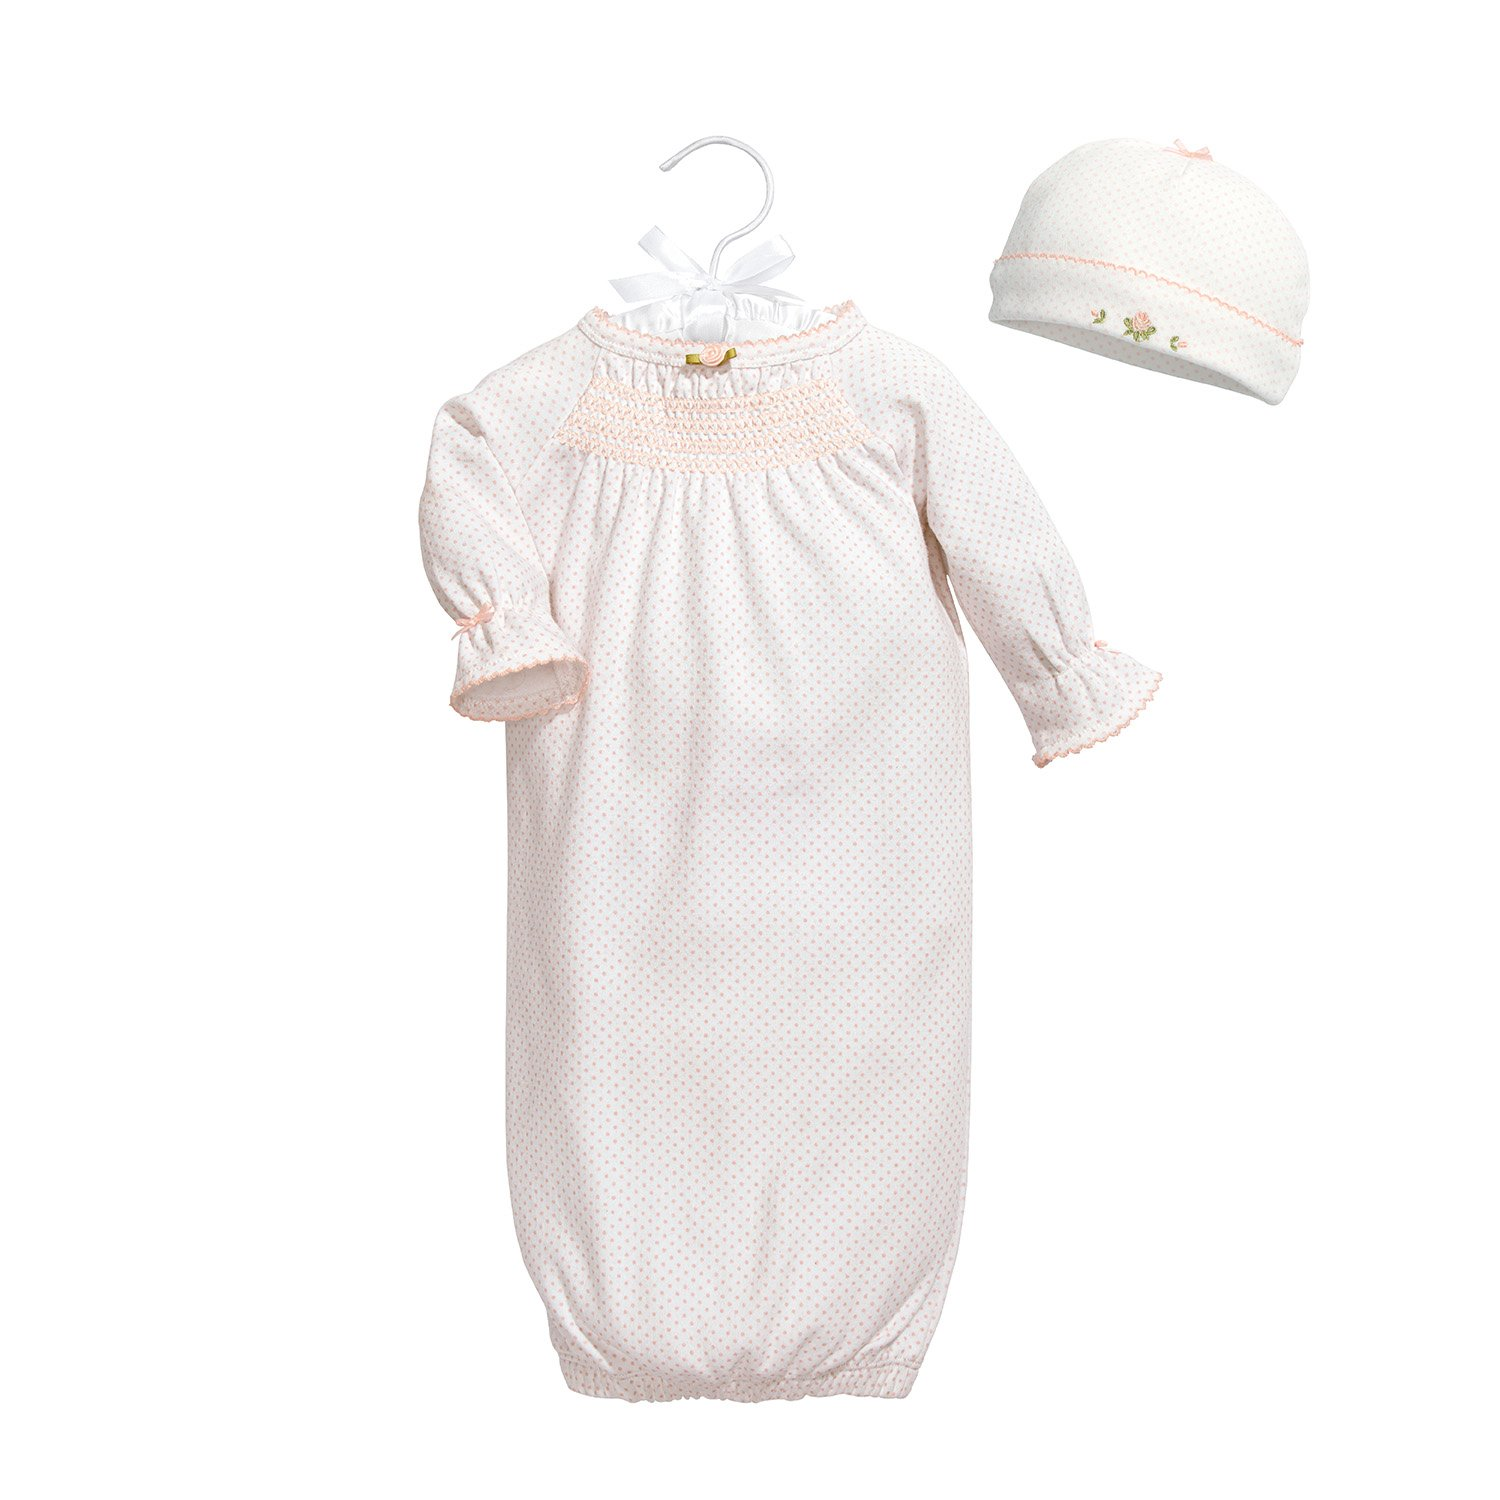 C.R. Gibson Heaven Sent Special Delivery Newborn Gown Gift Set, Fits Sizes 0-3 Months, Pink Dot